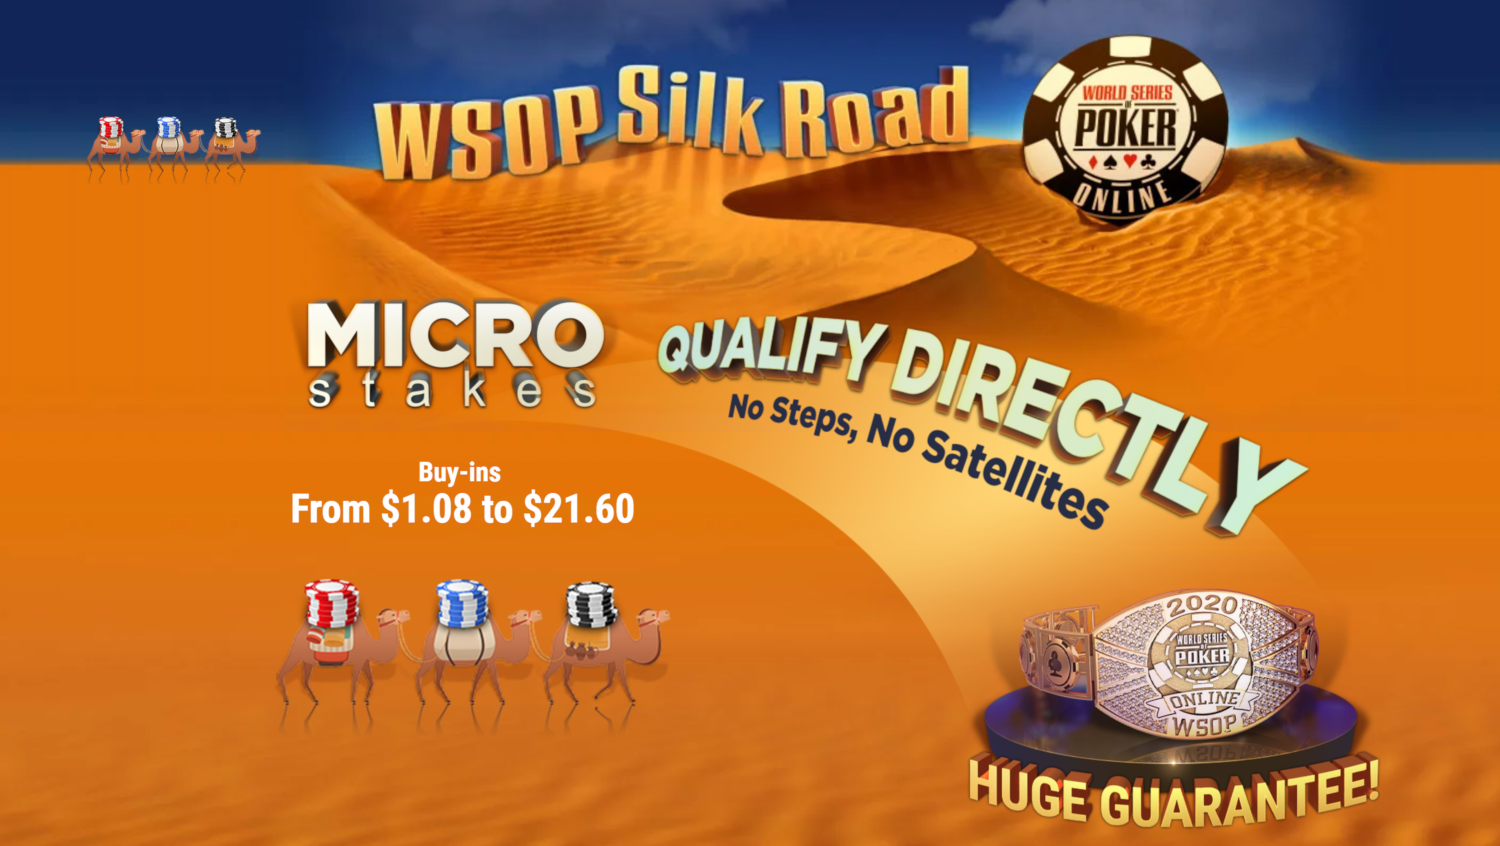 Ggpoker S Micro Stakes Satellite Series Silk Road Provides Huge Value To Players Pokerfuse